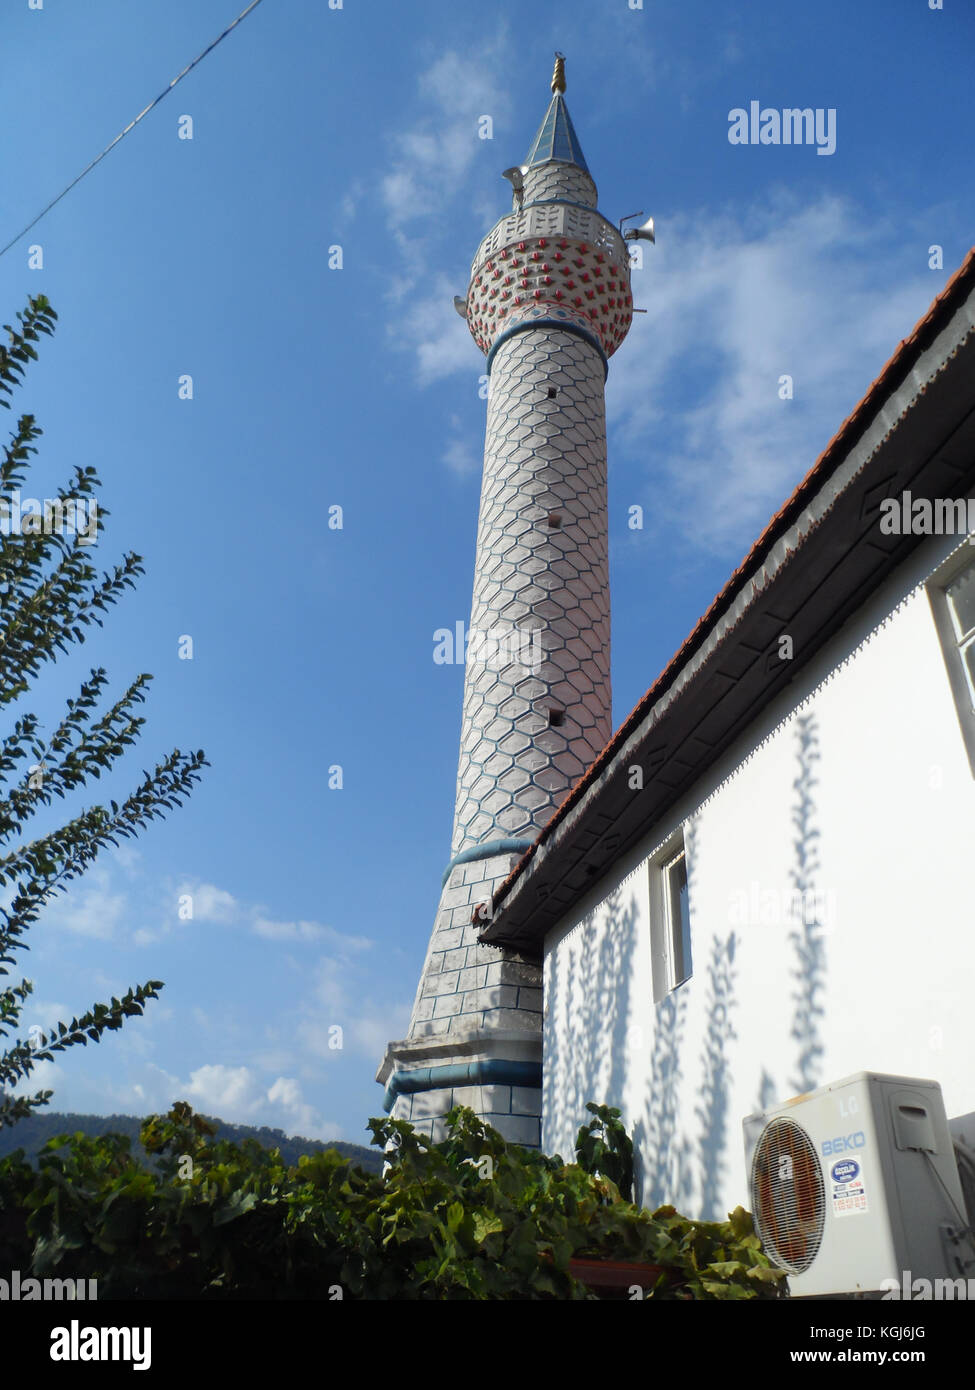 Ottoman Style Miranet Of A Mosque In Icmeler Old Village Mugla Province Turkey